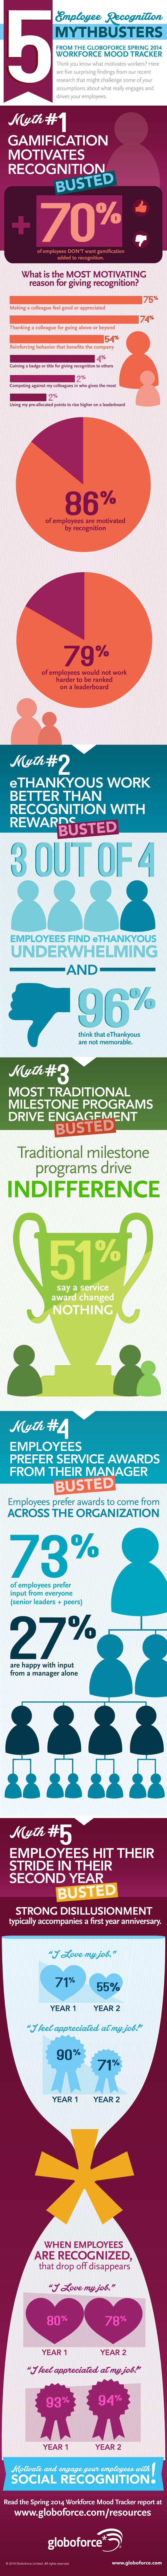 Infographic: 5 Employee Recognition Myths Busted